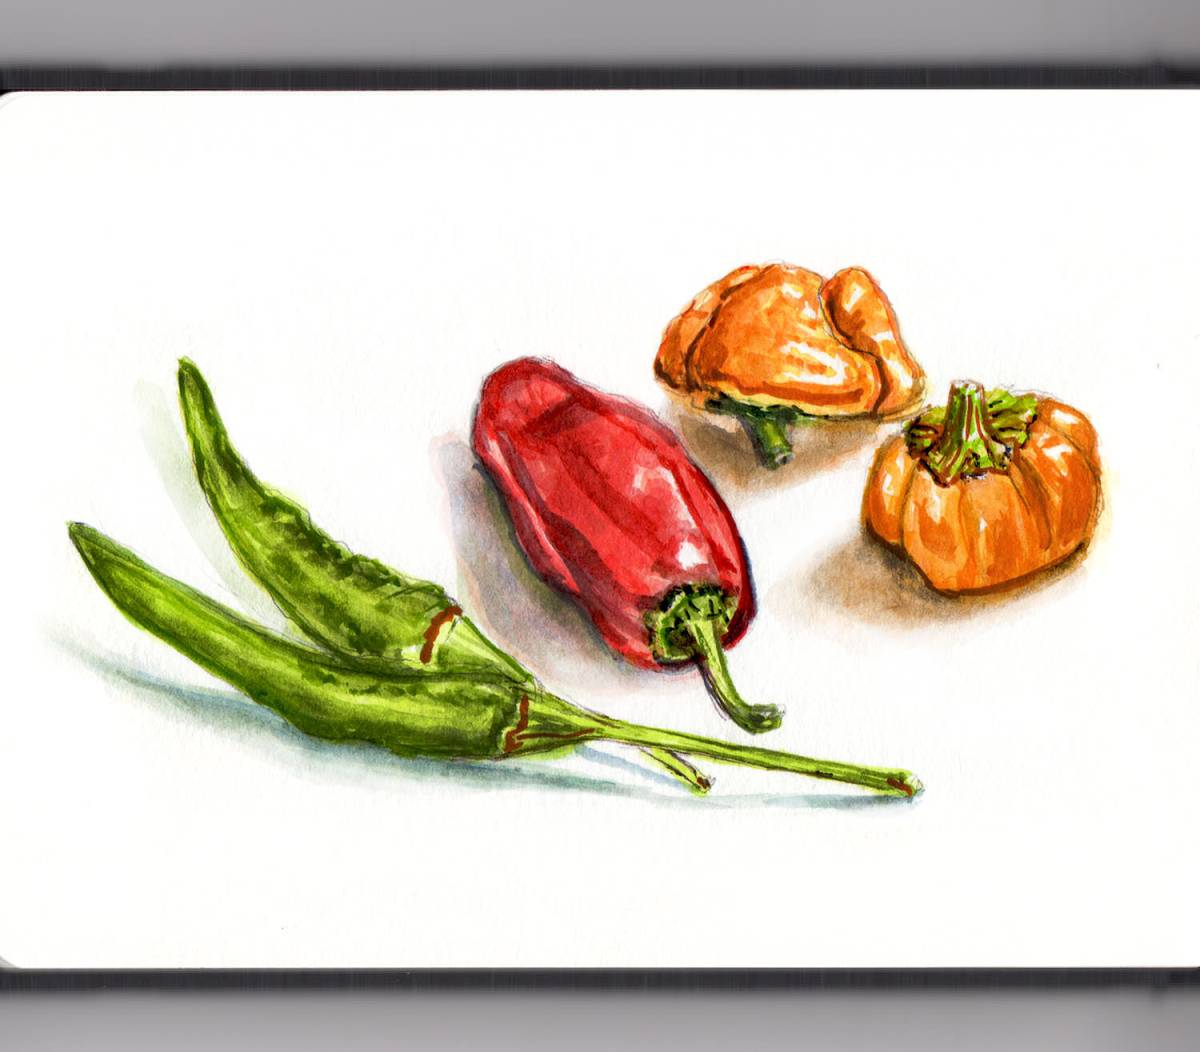 Day 13 - #WorldWatercolorGroup - Hot Pepper Mix Peppers in Watercolor Food Illustration - #doodlewash